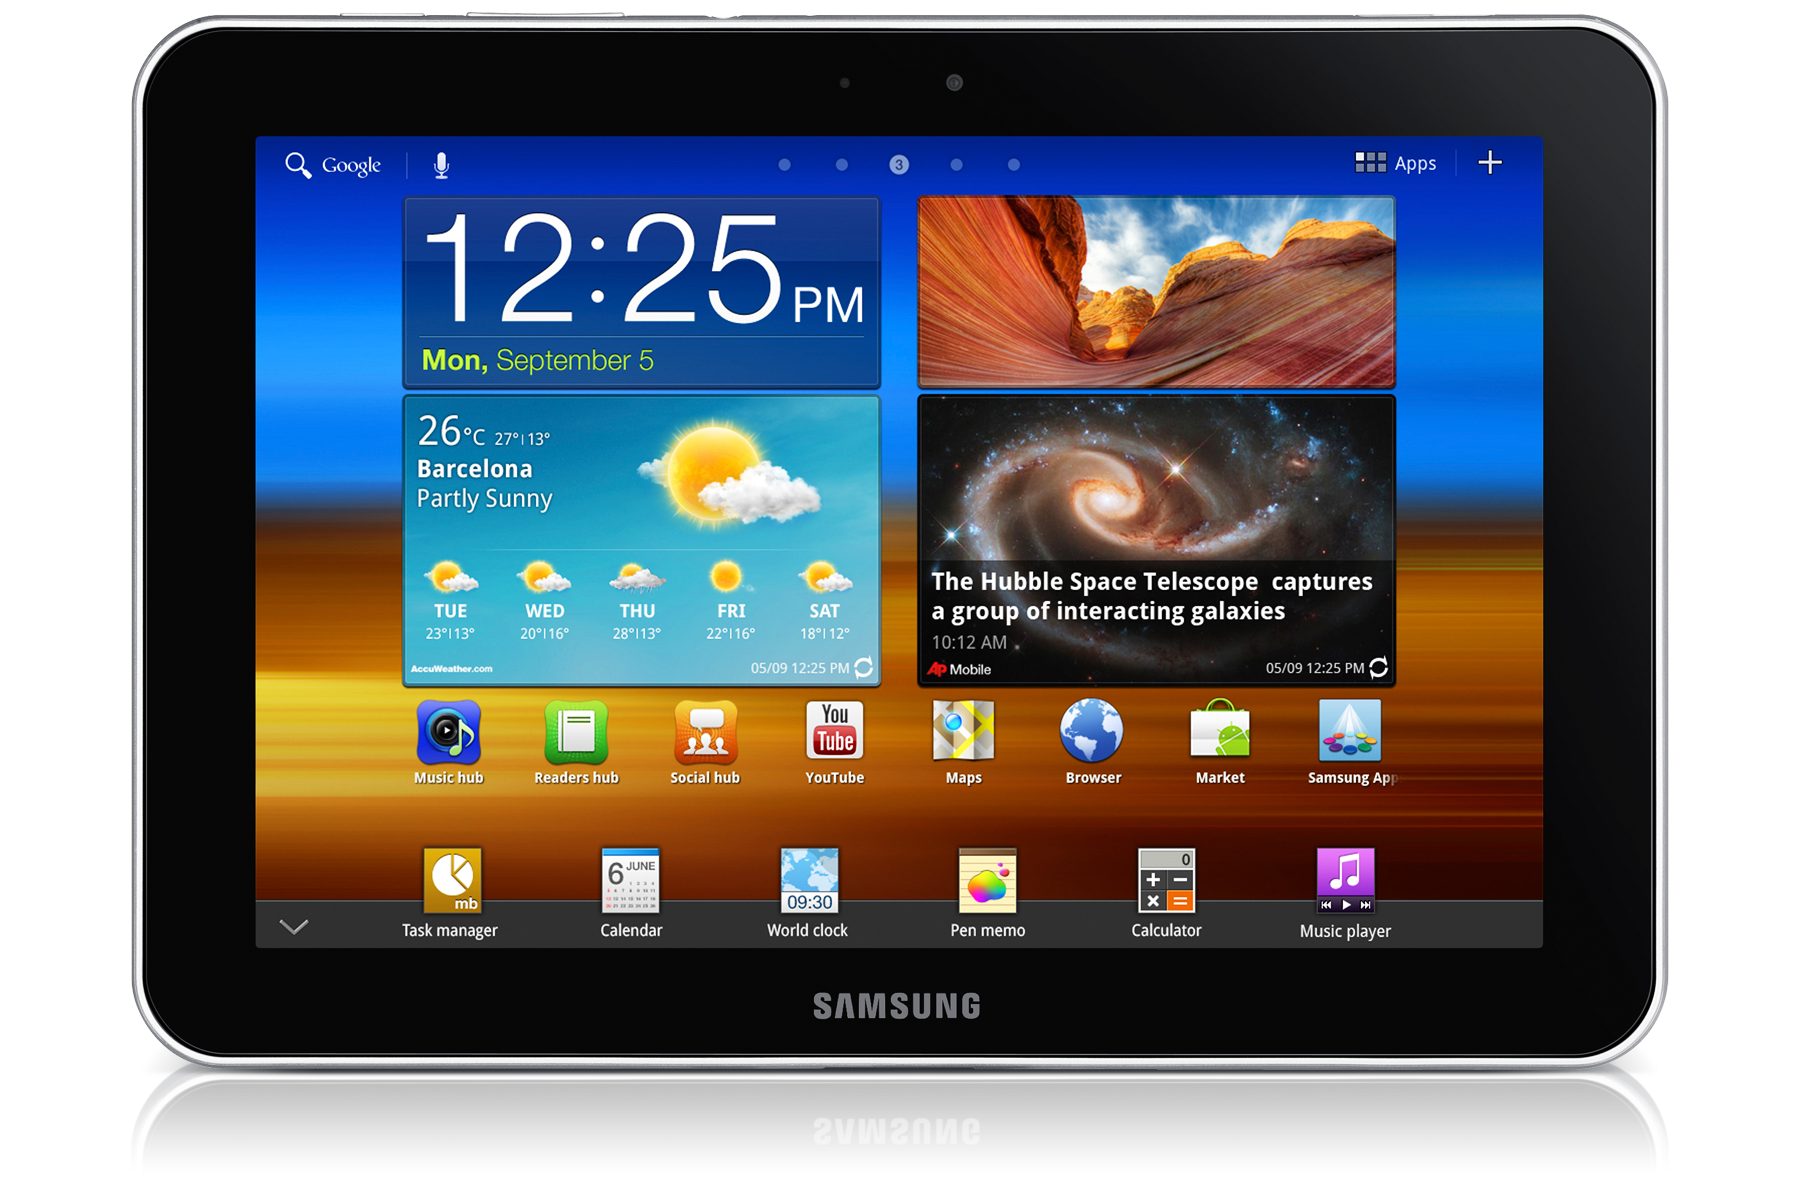 Galaxy Tab 8.9 3G + WiFi P7300 Android